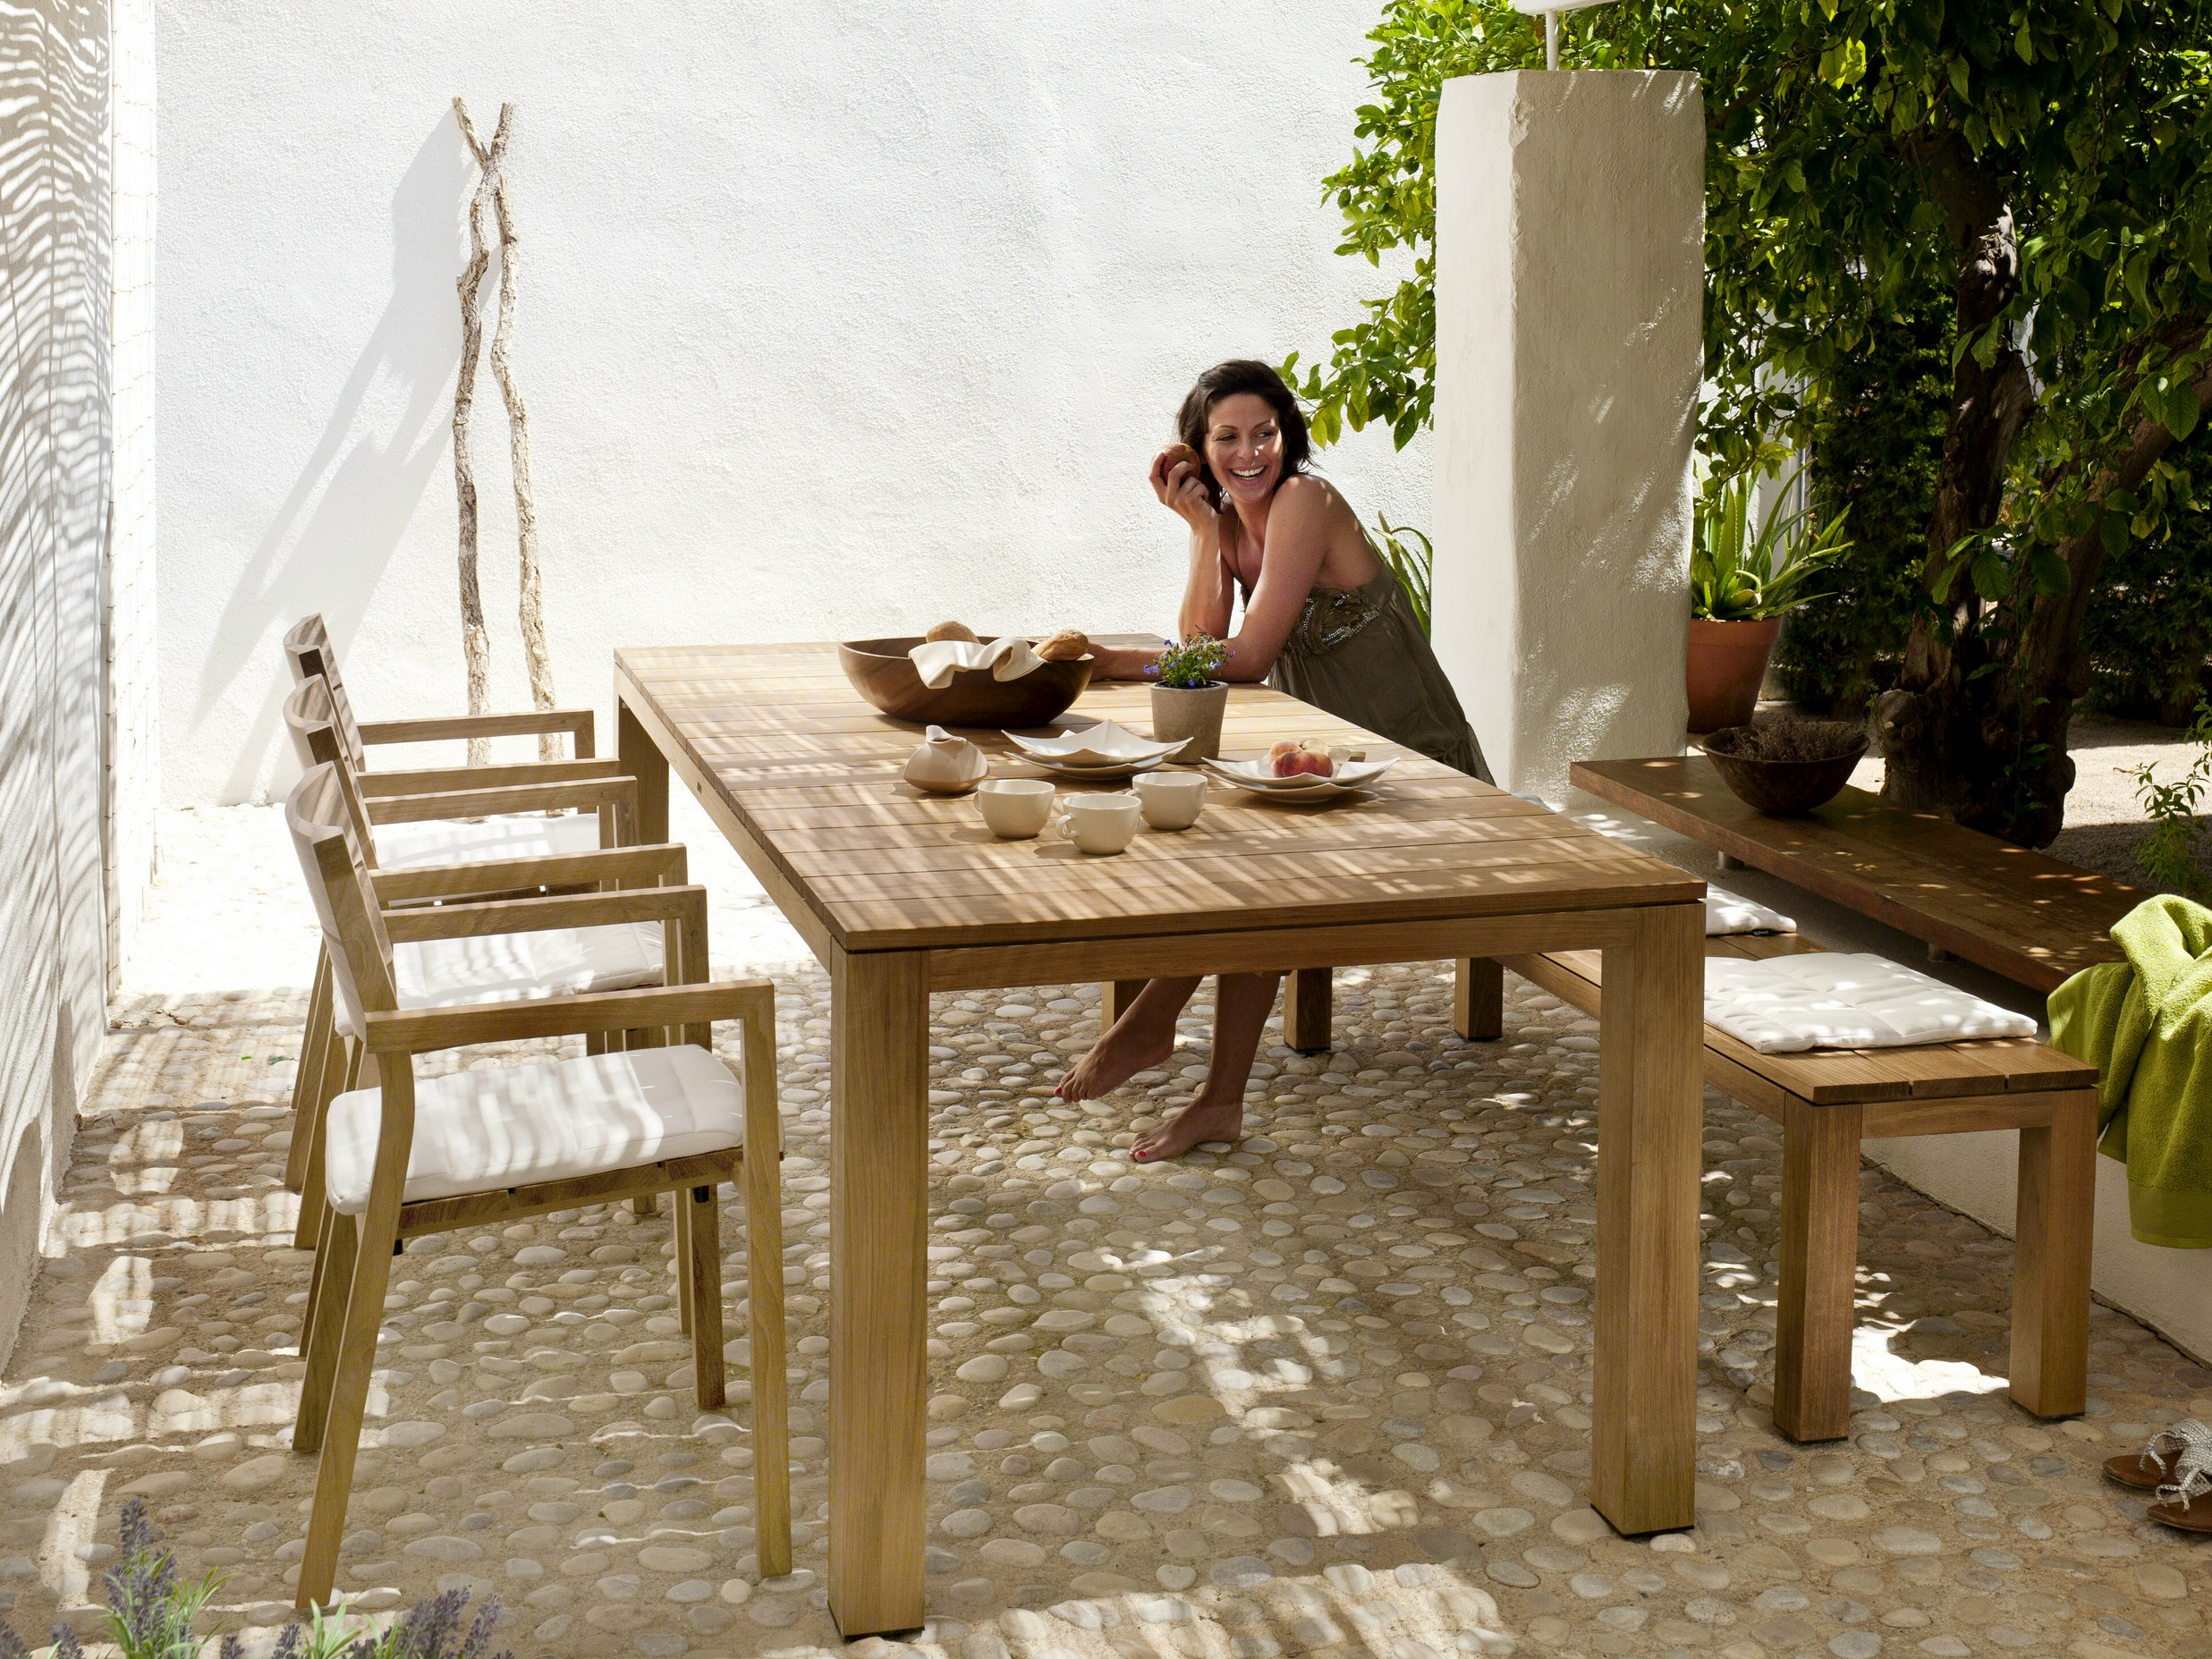 Emejing Table De Jardin Teck Belgique Pictures - House Design ...